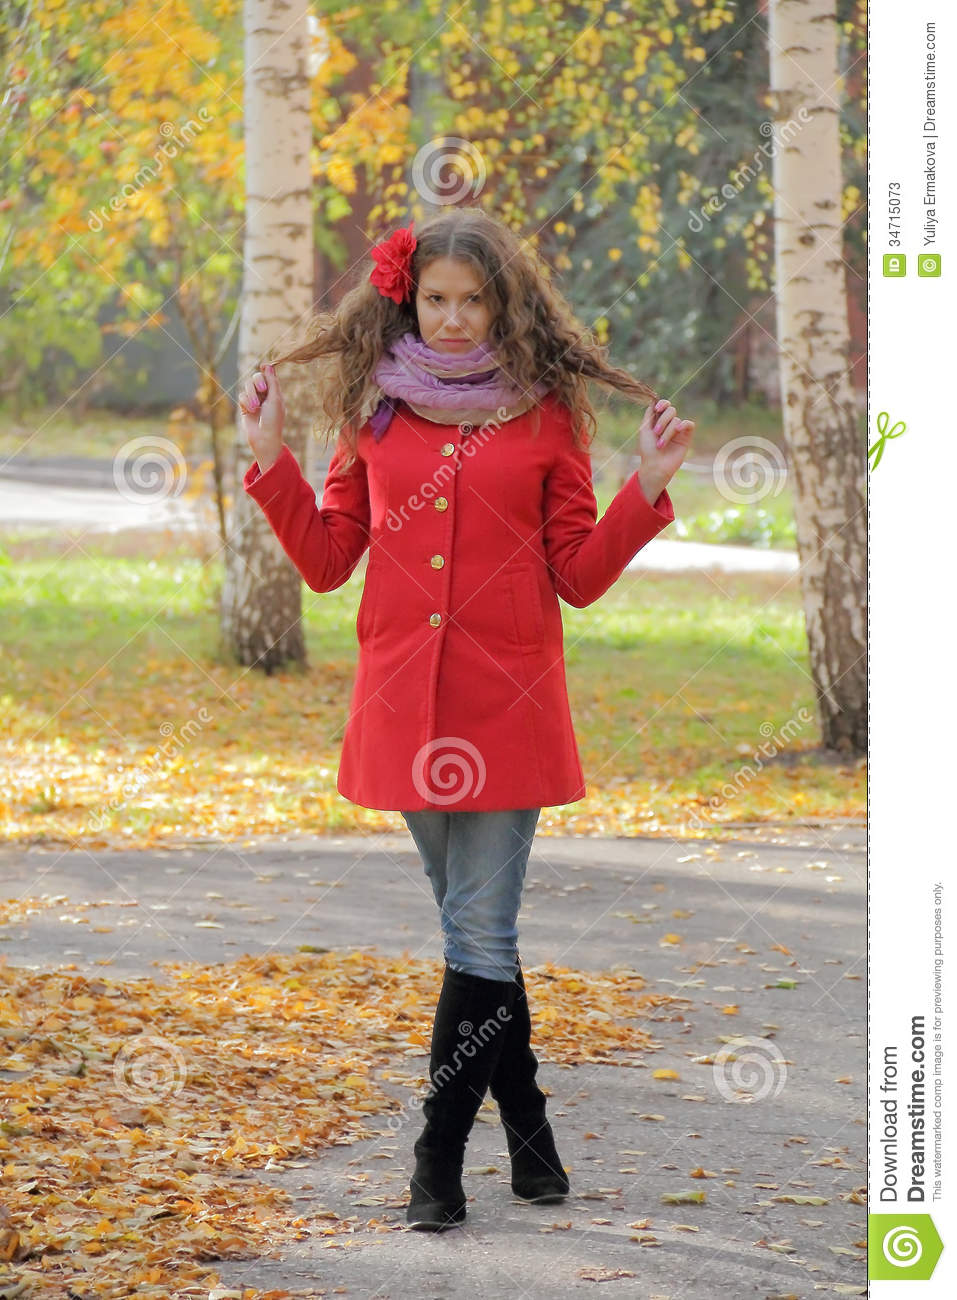 Beautiful Young Woman In Red Coat Stock Photos - Image: 34715073